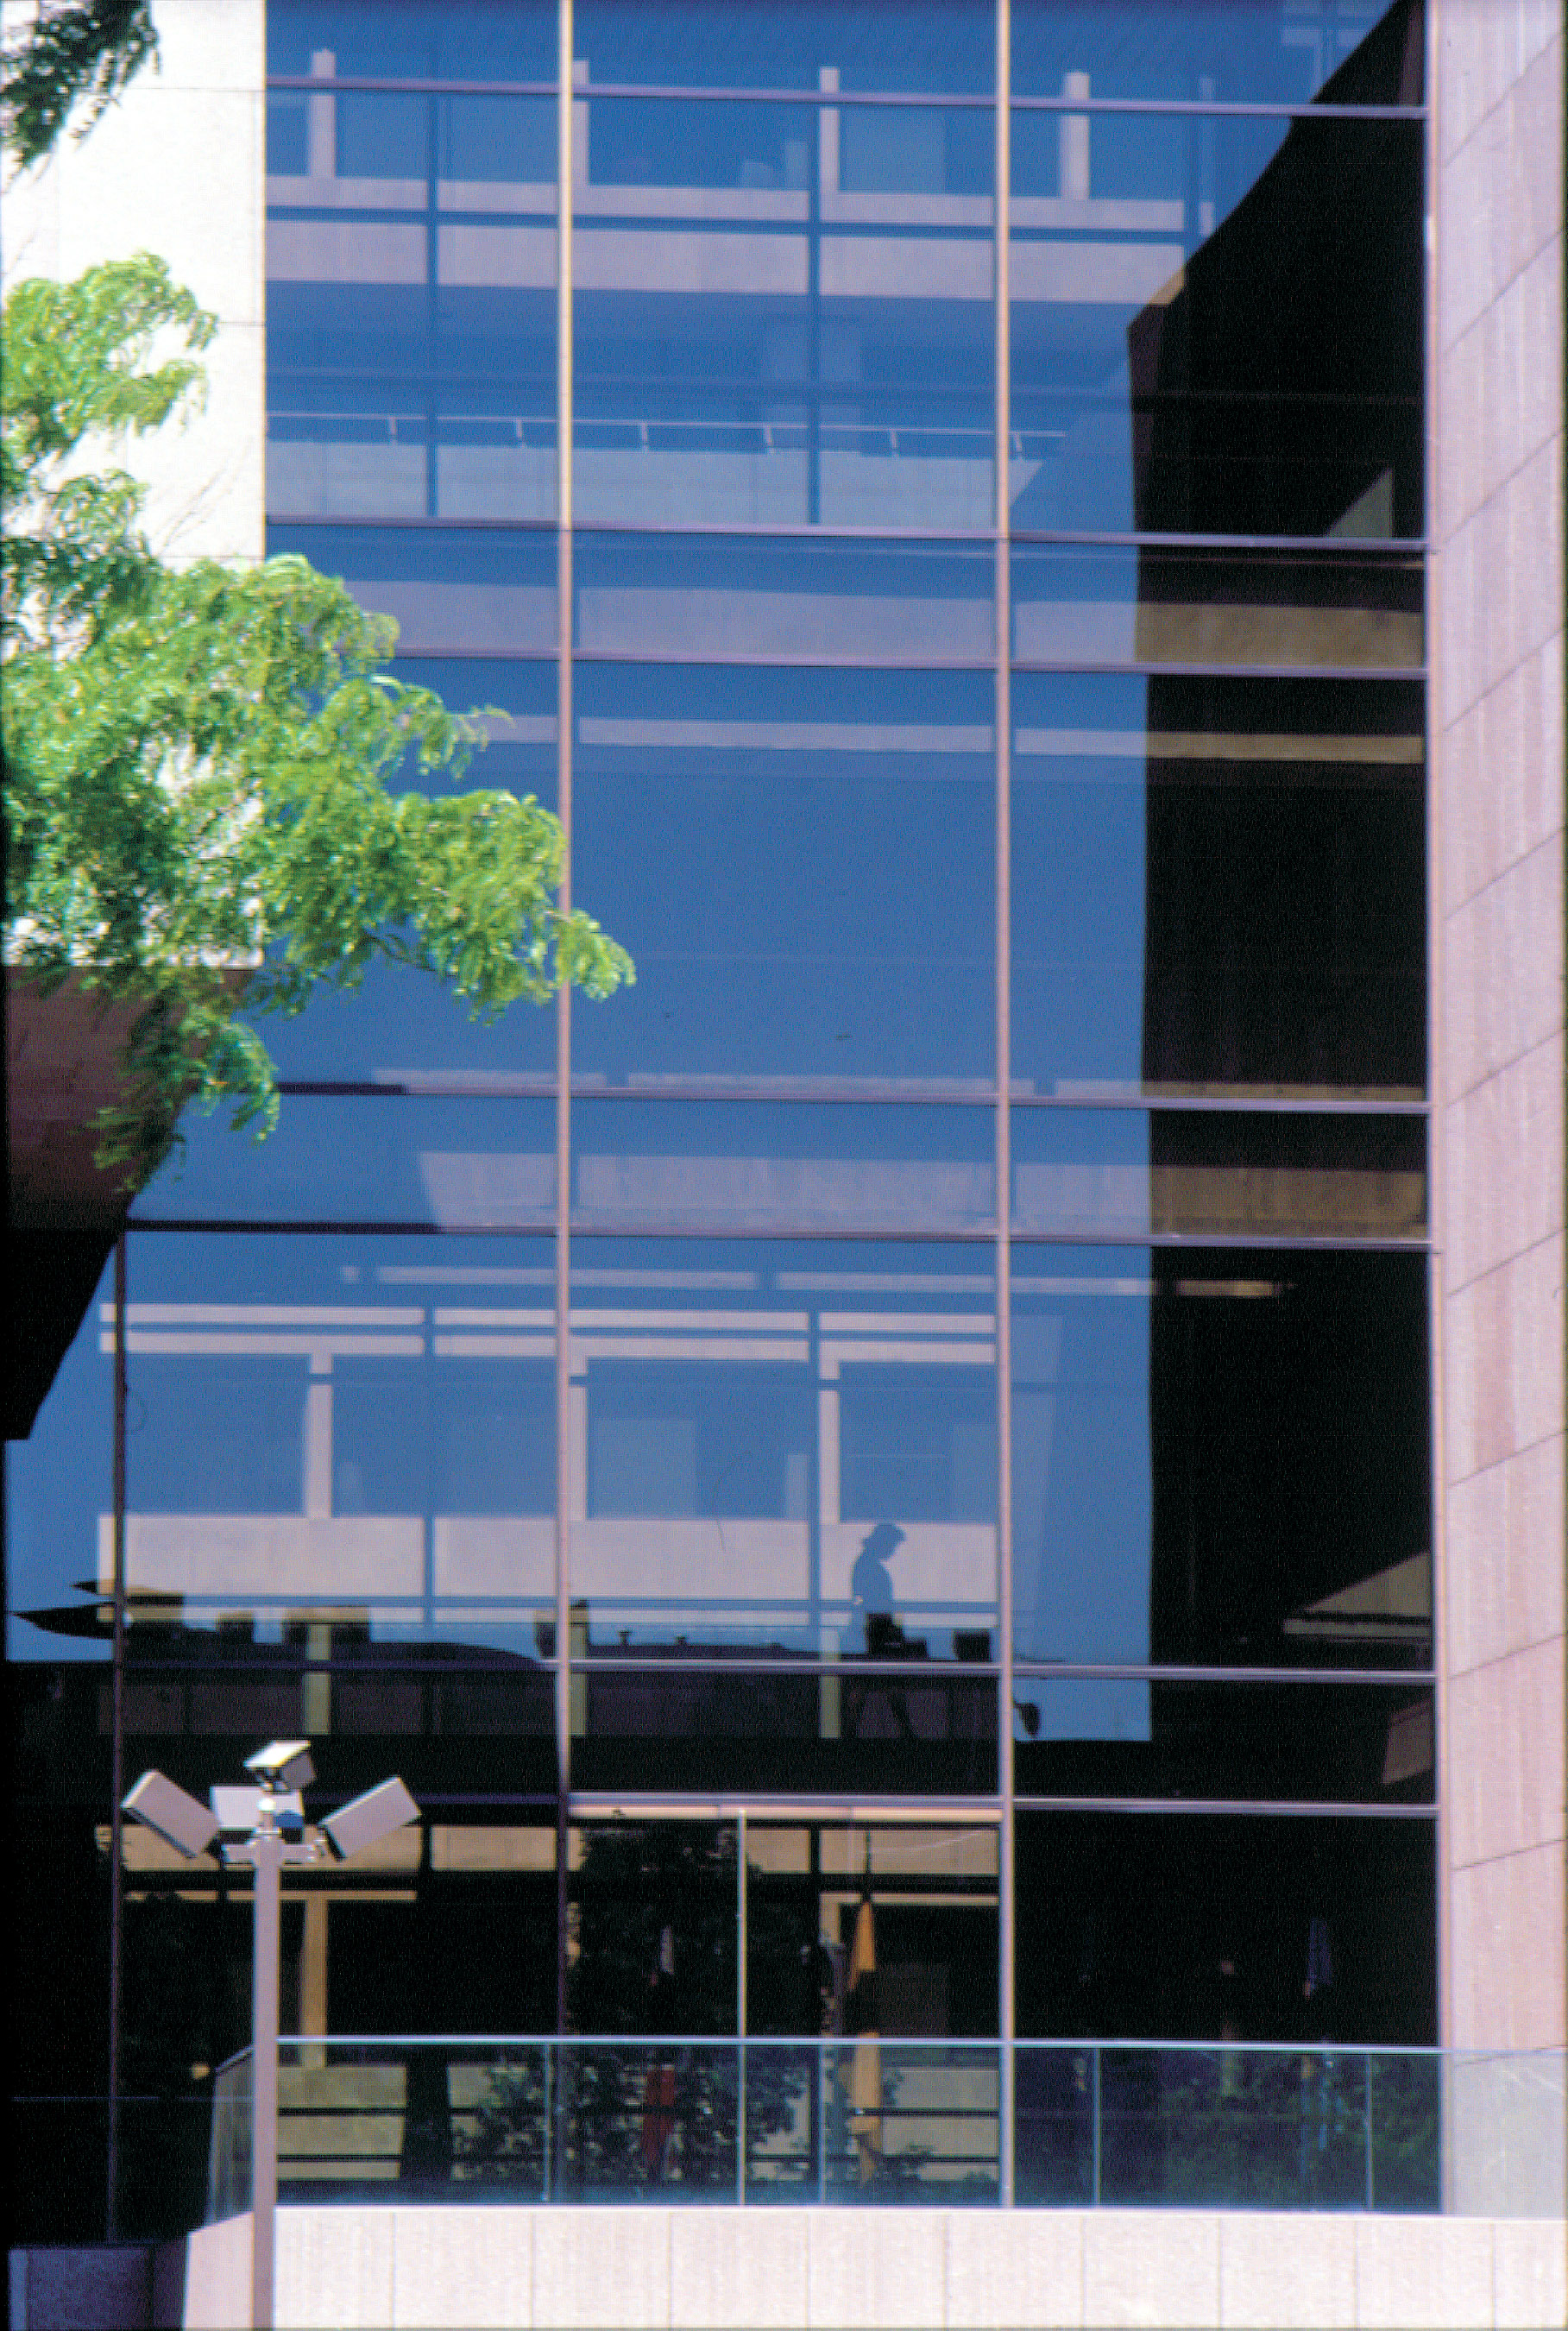 Detail of the central cantilevered glass block fronting the landscaped plaza on 2nd Street, NW. The glass is bronze-tinted with slim bronze-anodized aluminum mullions.